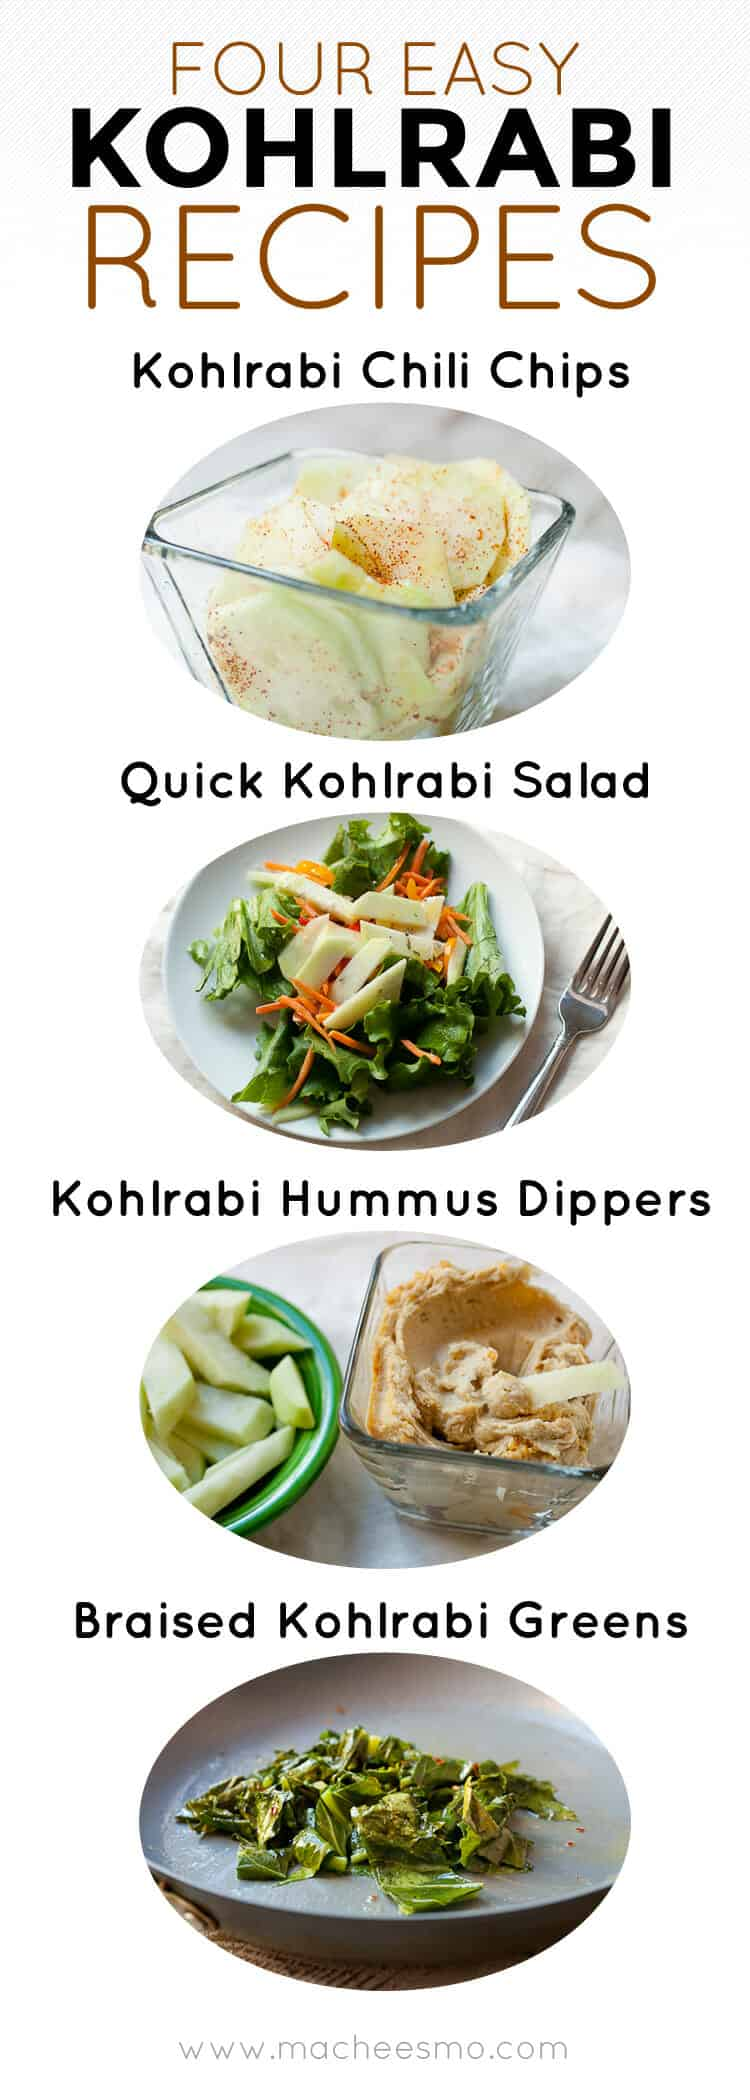 Wonderful Ways to Eat Kohlrabi! Kohlrabi is my new favorite vegetable to eat raw! Toss it on salads, use it as a dipper, or make raw veggie chips out of it! Oh... and don't forget the greens! Check out the post to see how to transform this vegetable into total deliciousness. | macheesmo.com